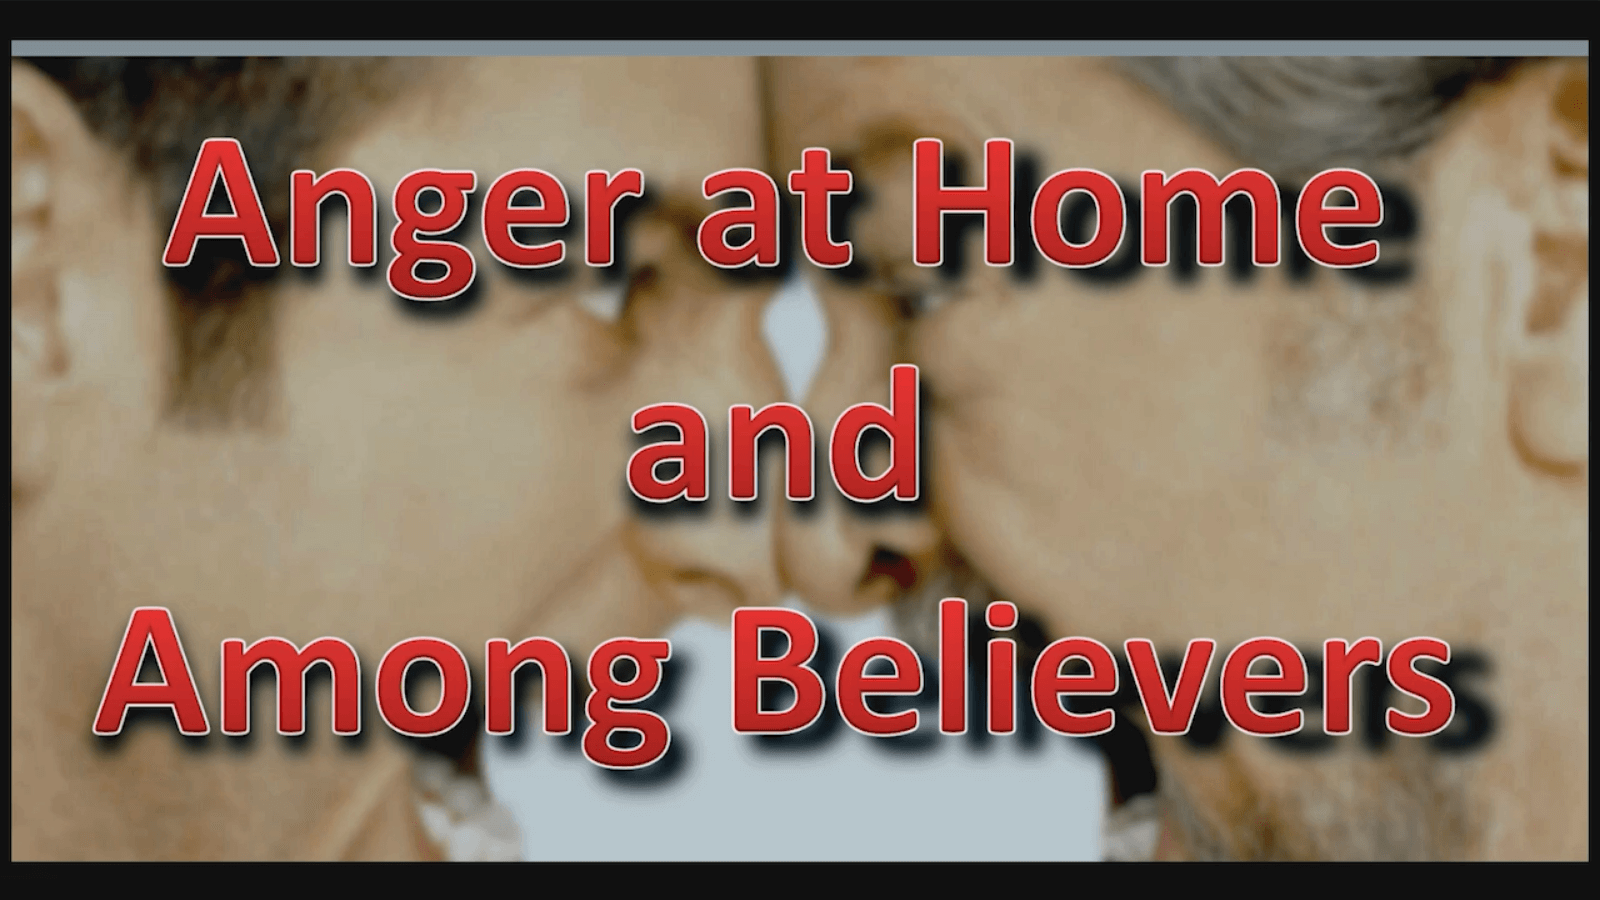 Anger at Home and Among Believers